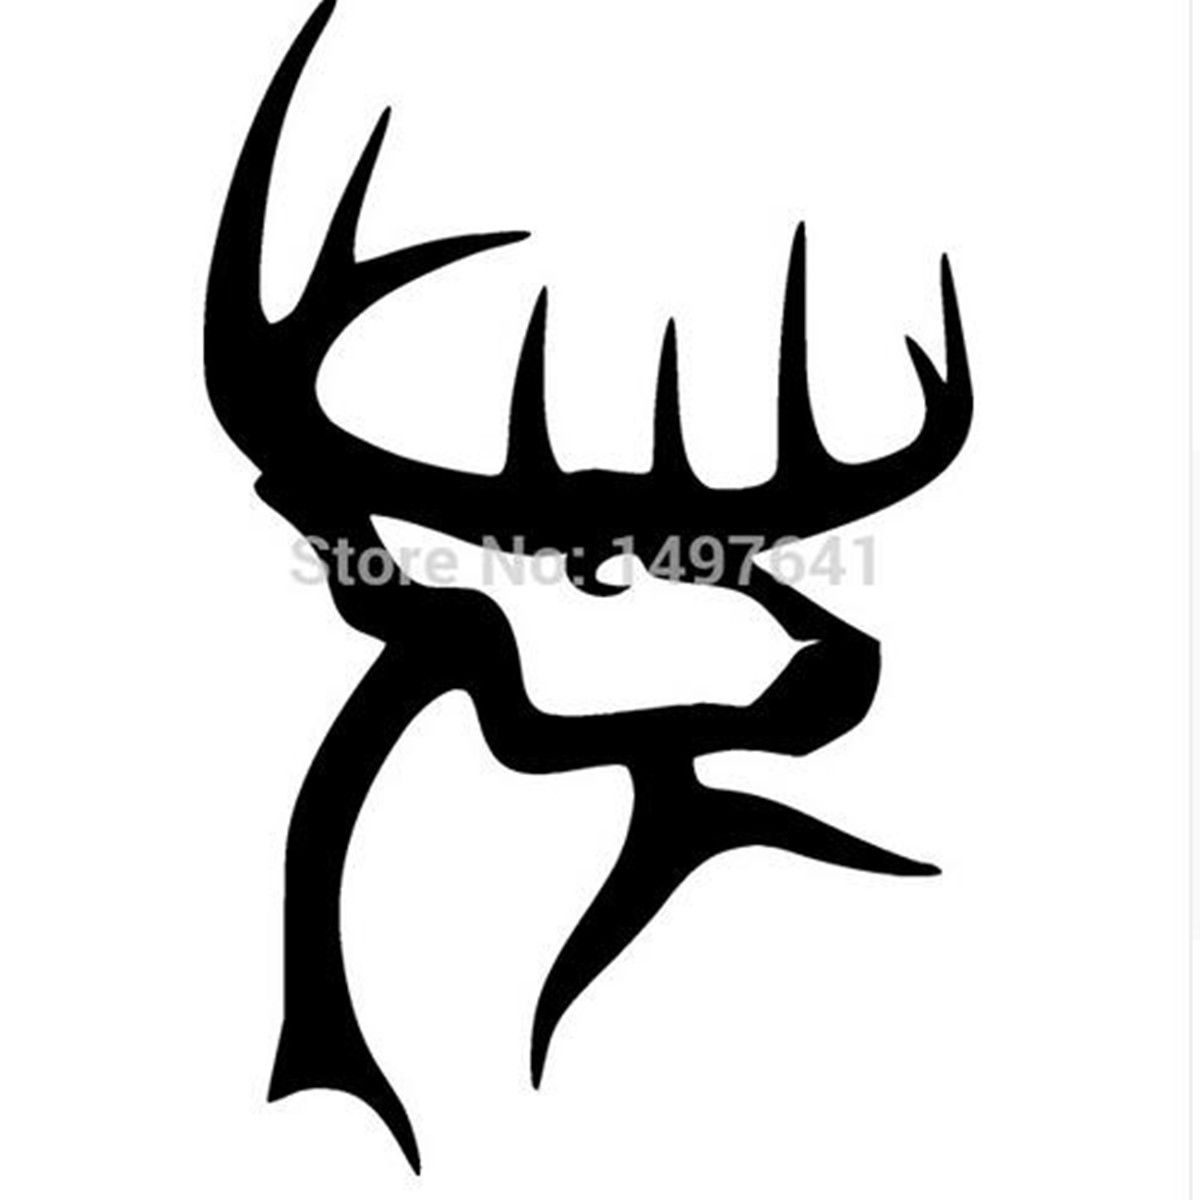 Truck Decals Stickers Rear Window Graphics Legendary Whitetails - Rear window hunting decals for trucks